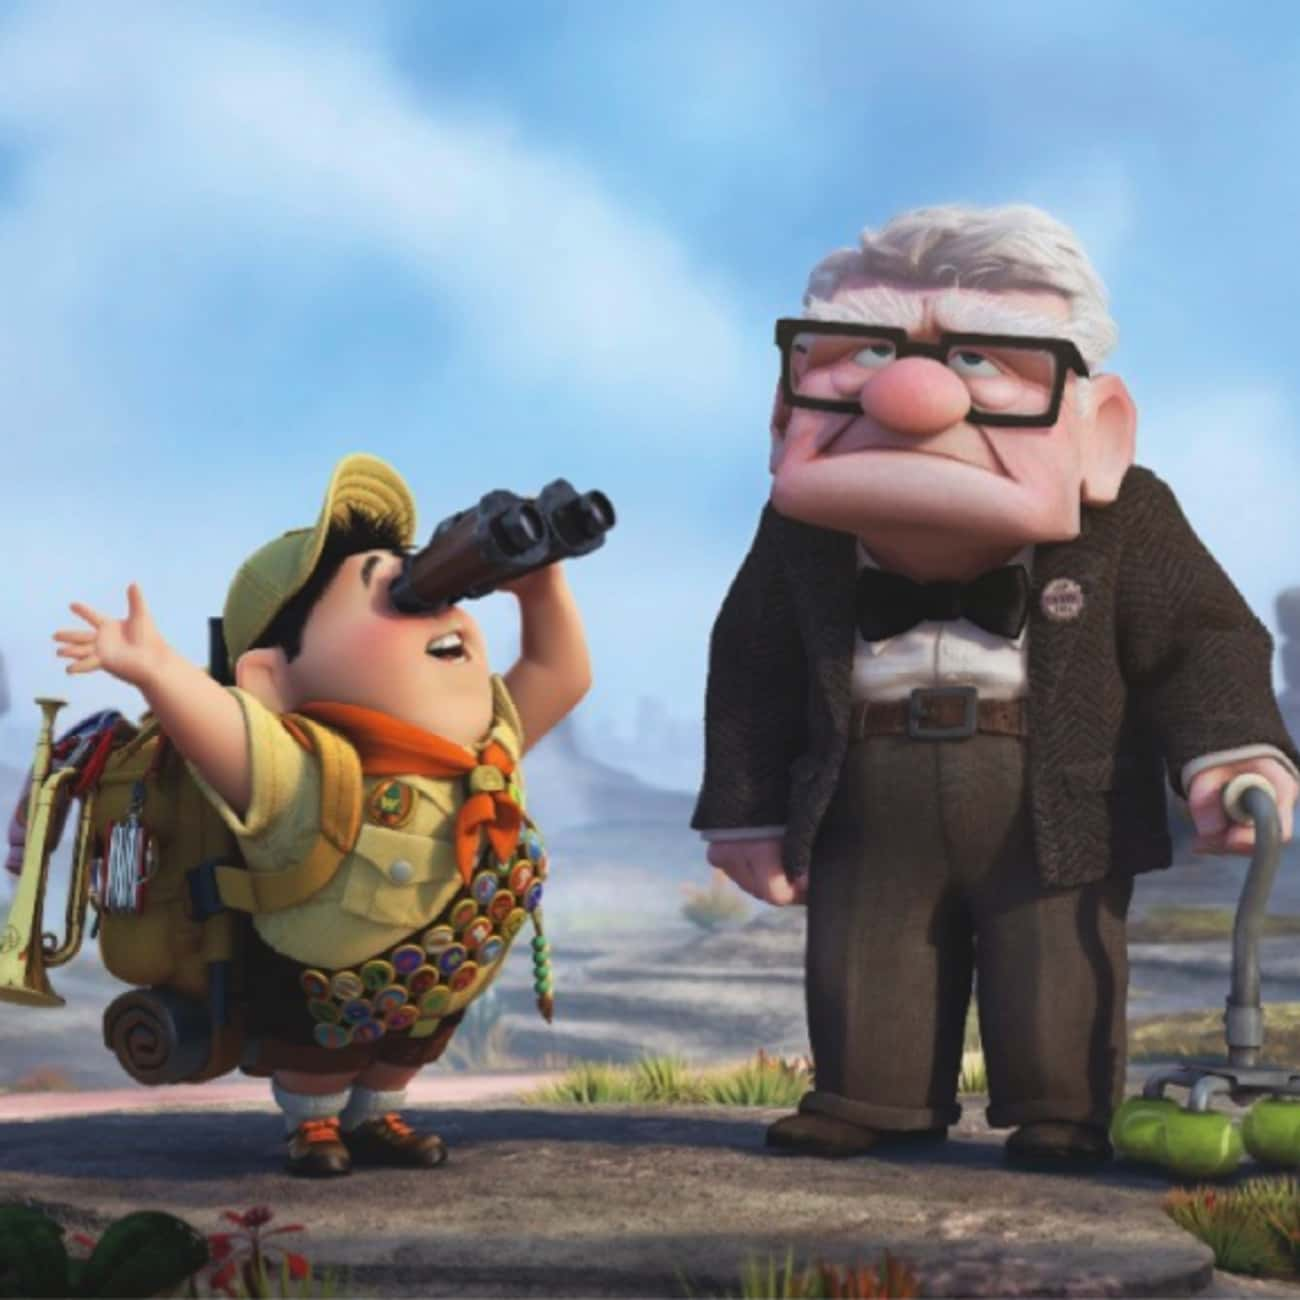 Play A Game is listed (or ranked) 2 on the list The Most Adventurous Quotes From Disney and Pixar's 'Up'